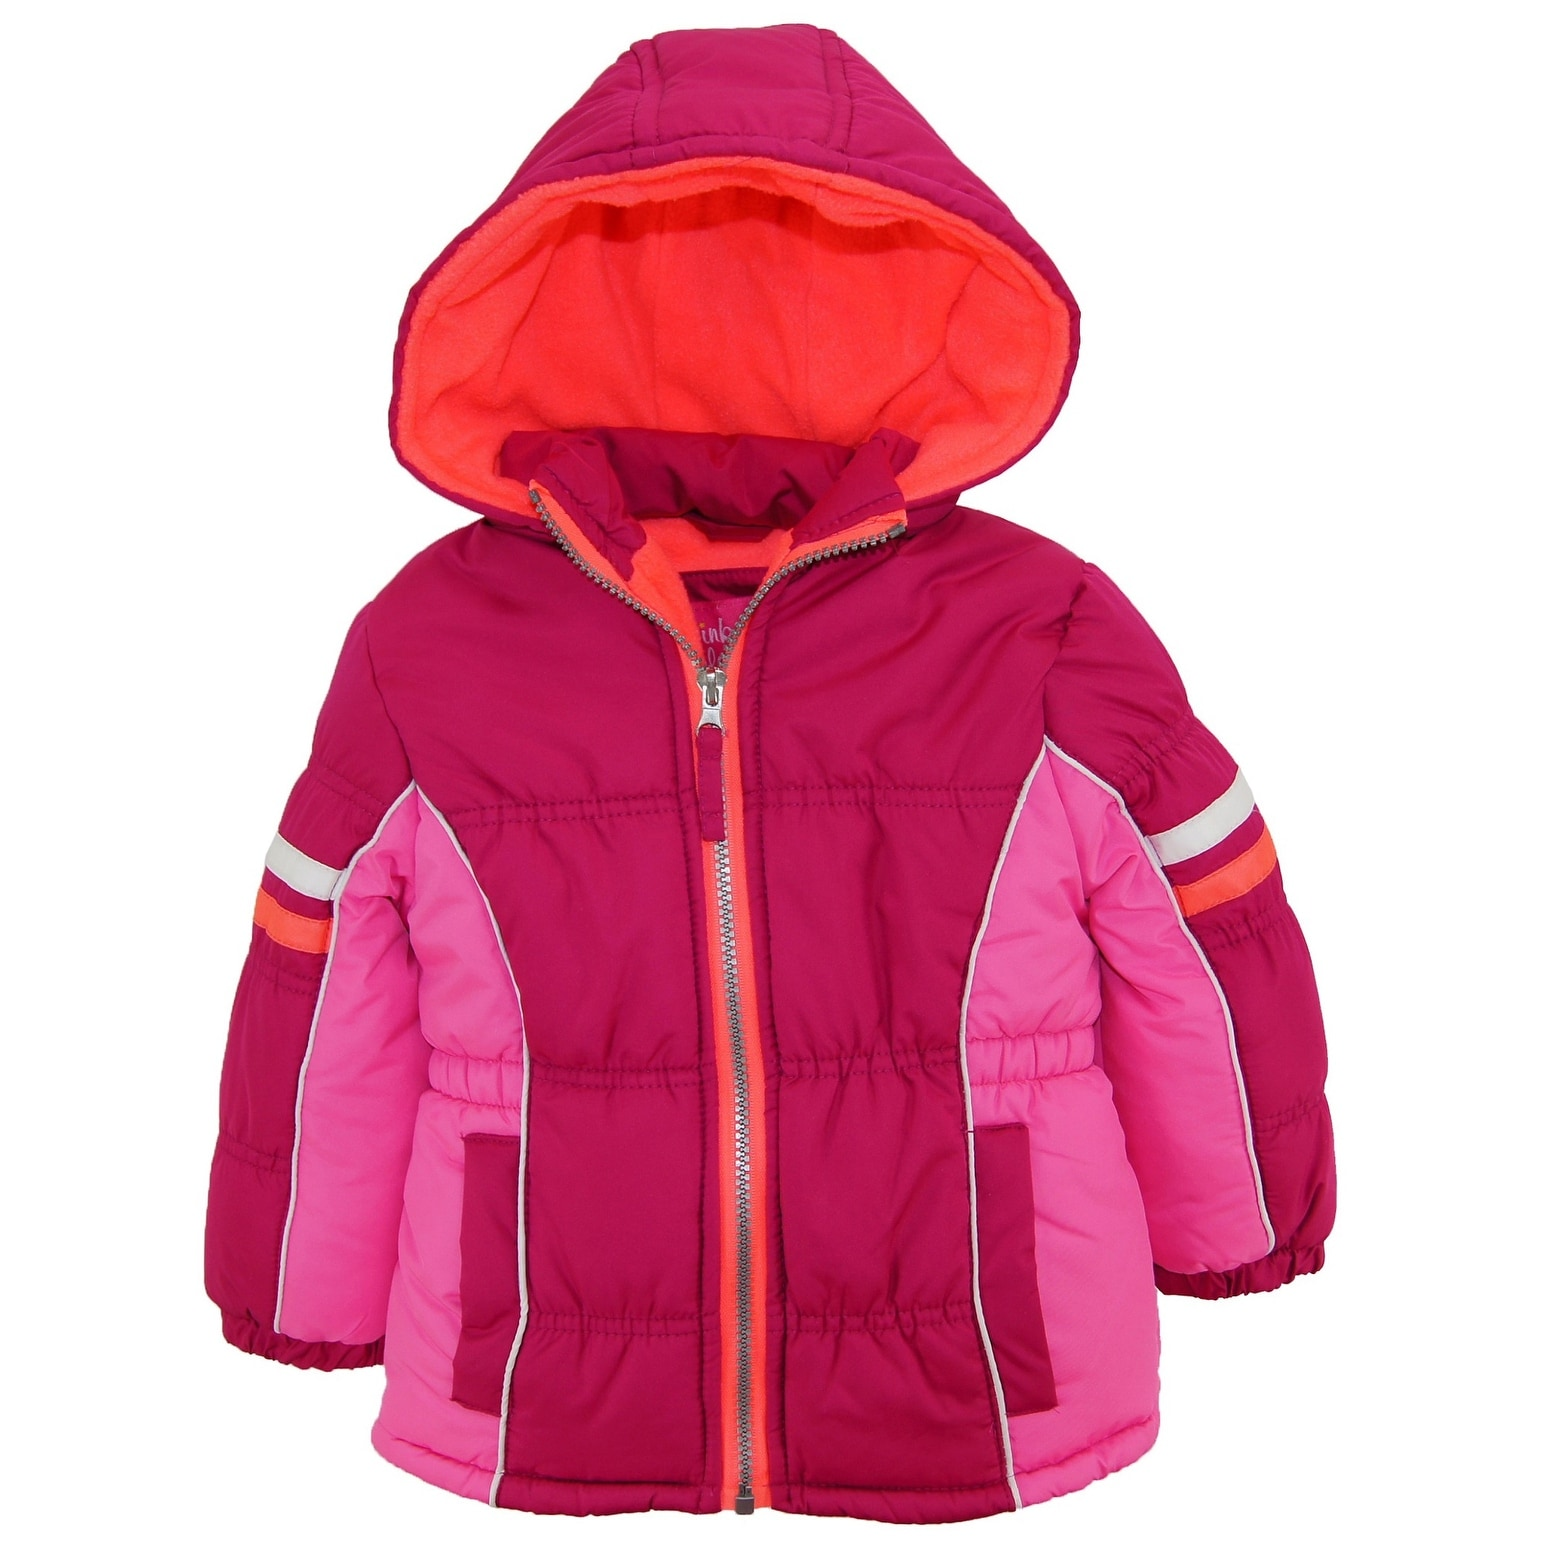 reasonably priced various design hot sale Pink Platinum Toddler Girl Colorblock Active Winter Coat Puffer Jacket